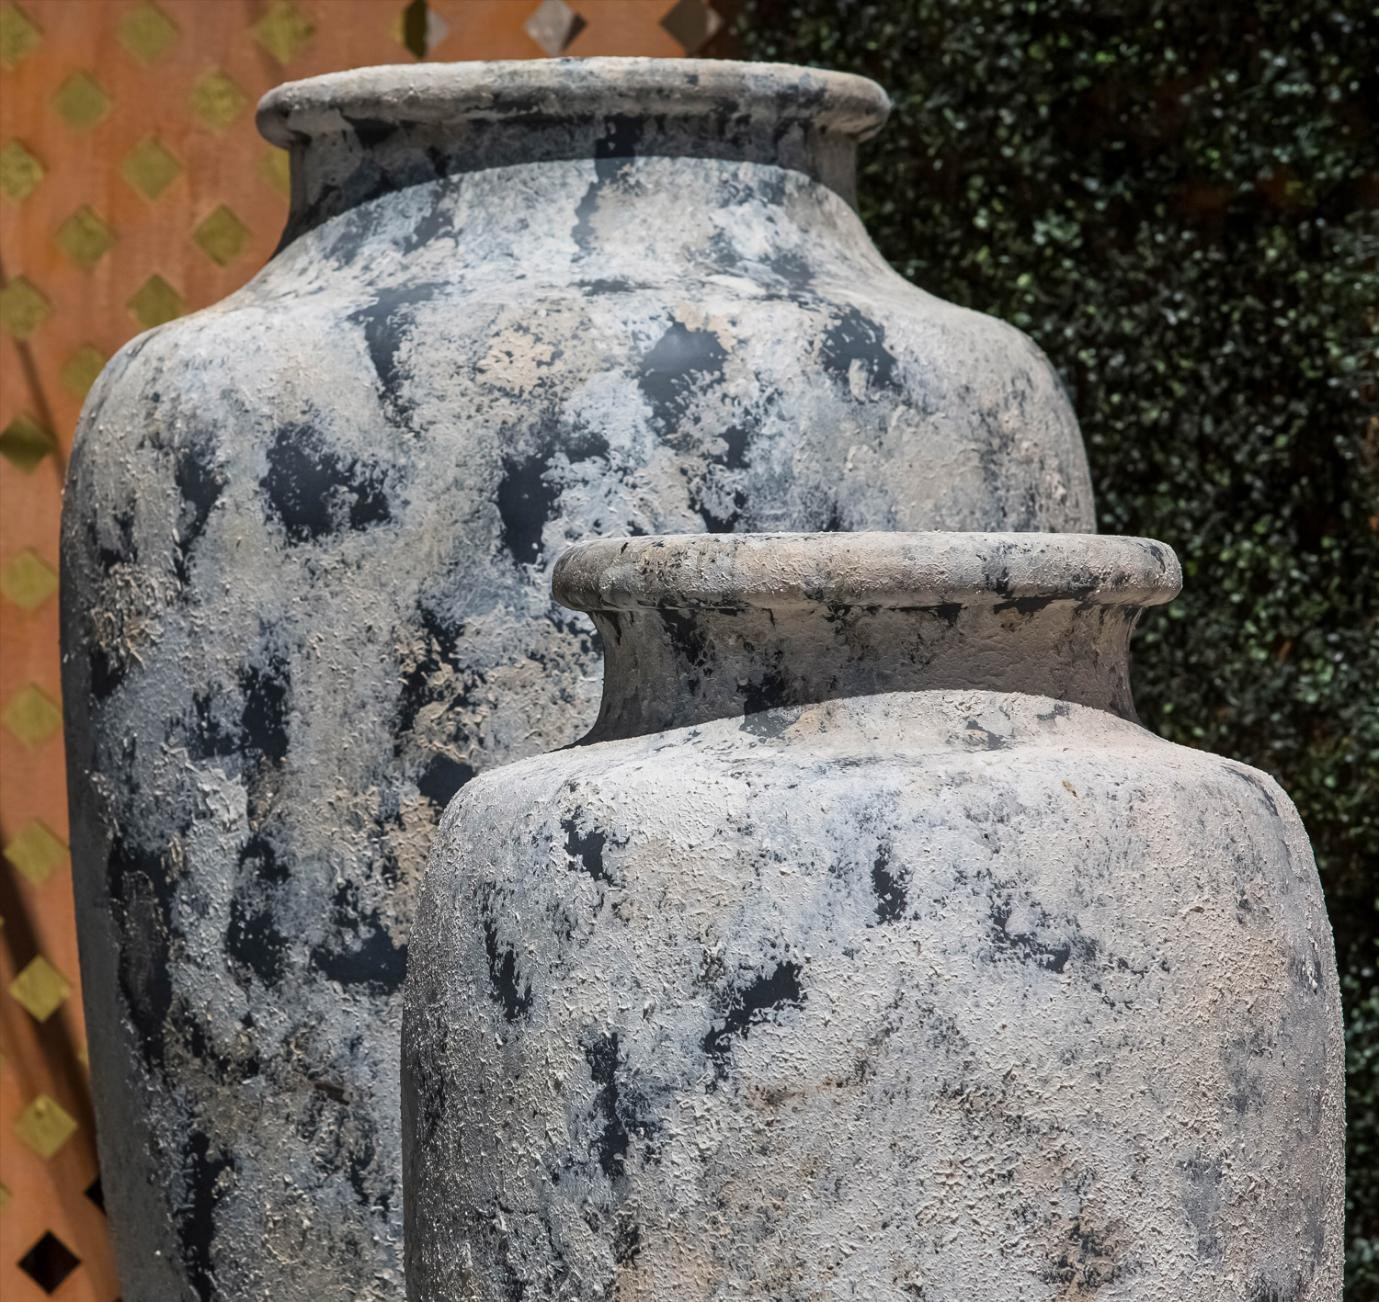 image - How to Find Large Garden Pots to BeautifyYour Home's Outdoor Area